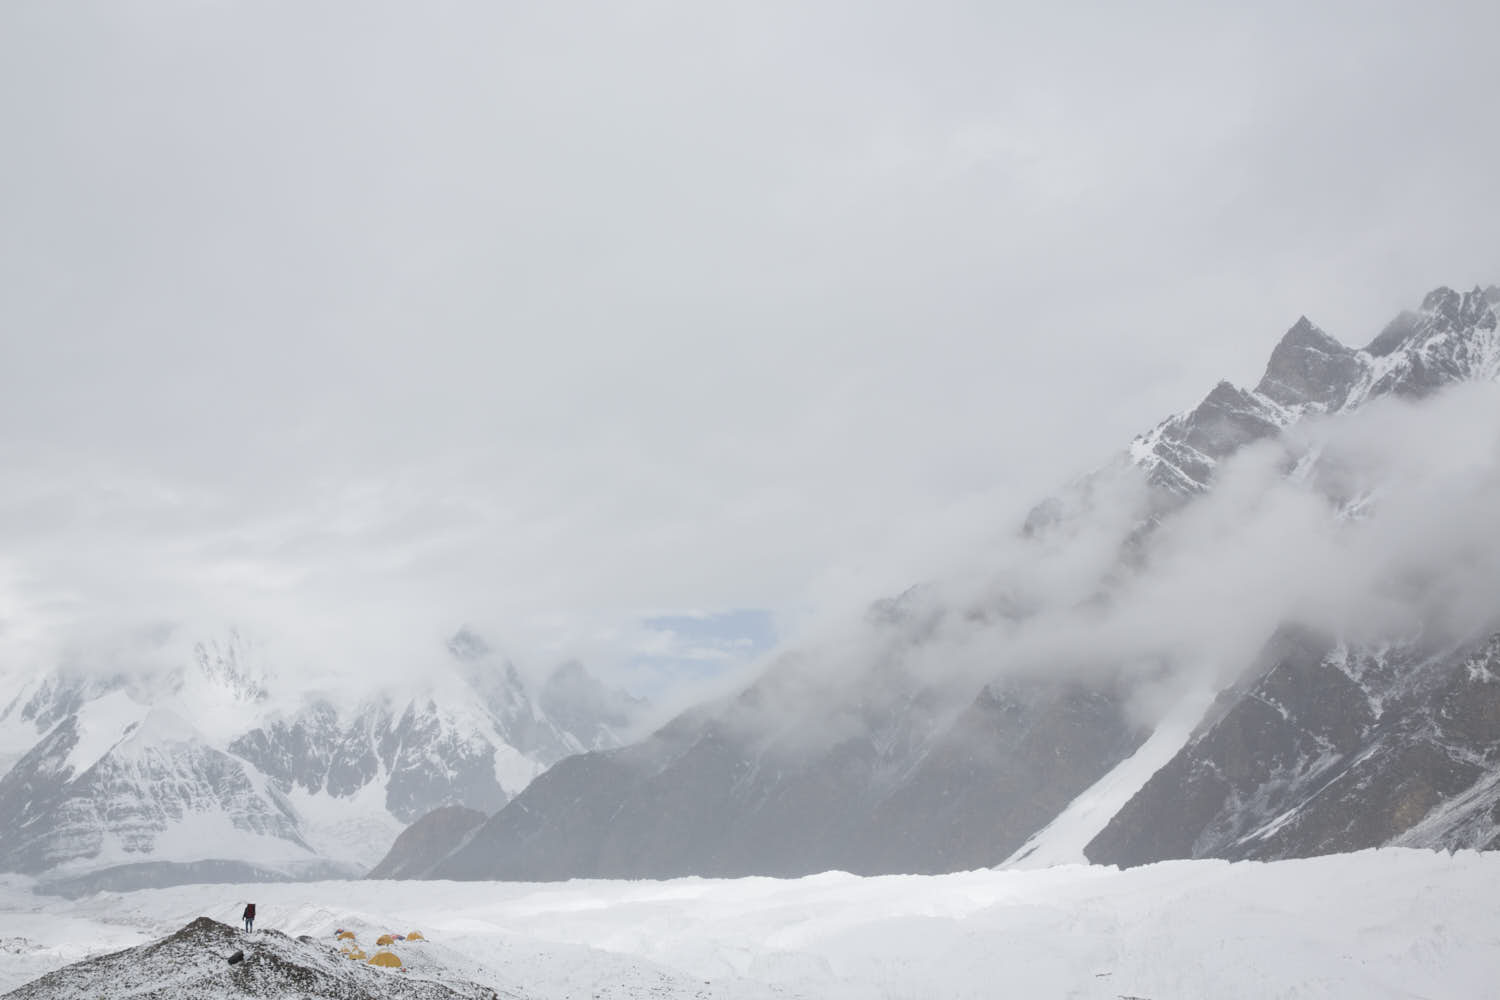 A person walking in a mountain edge next to a glacier covered in clouds.